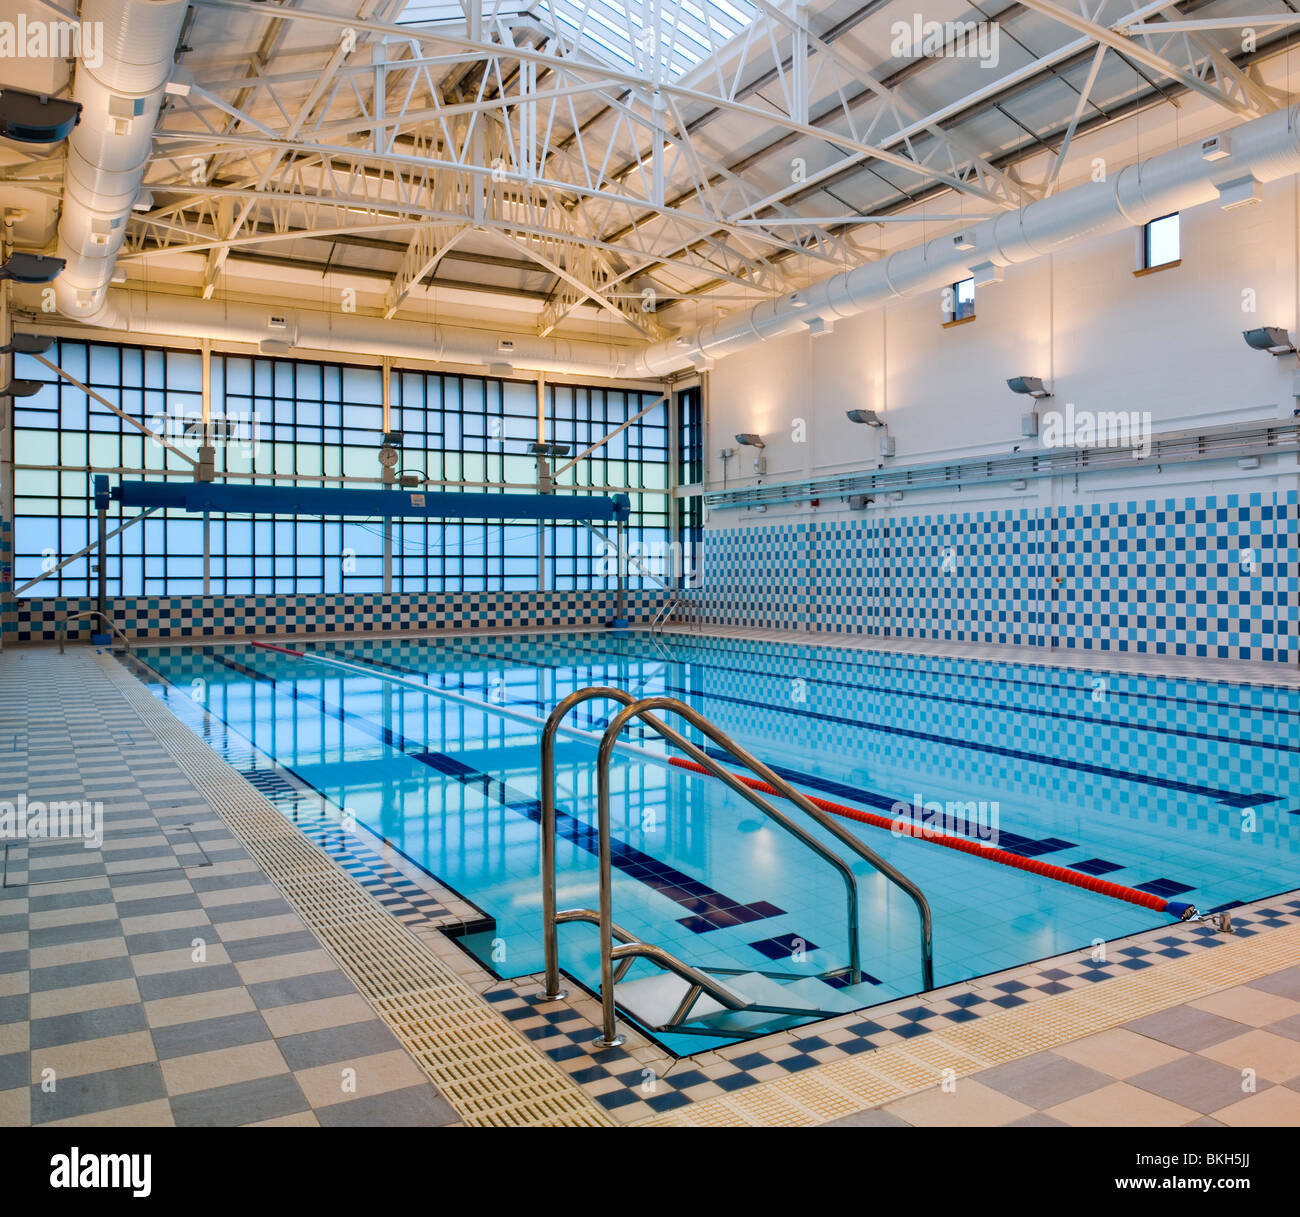 Swimming Pool At Maryhill Leisure Centre, Glasgow.   Stock Image